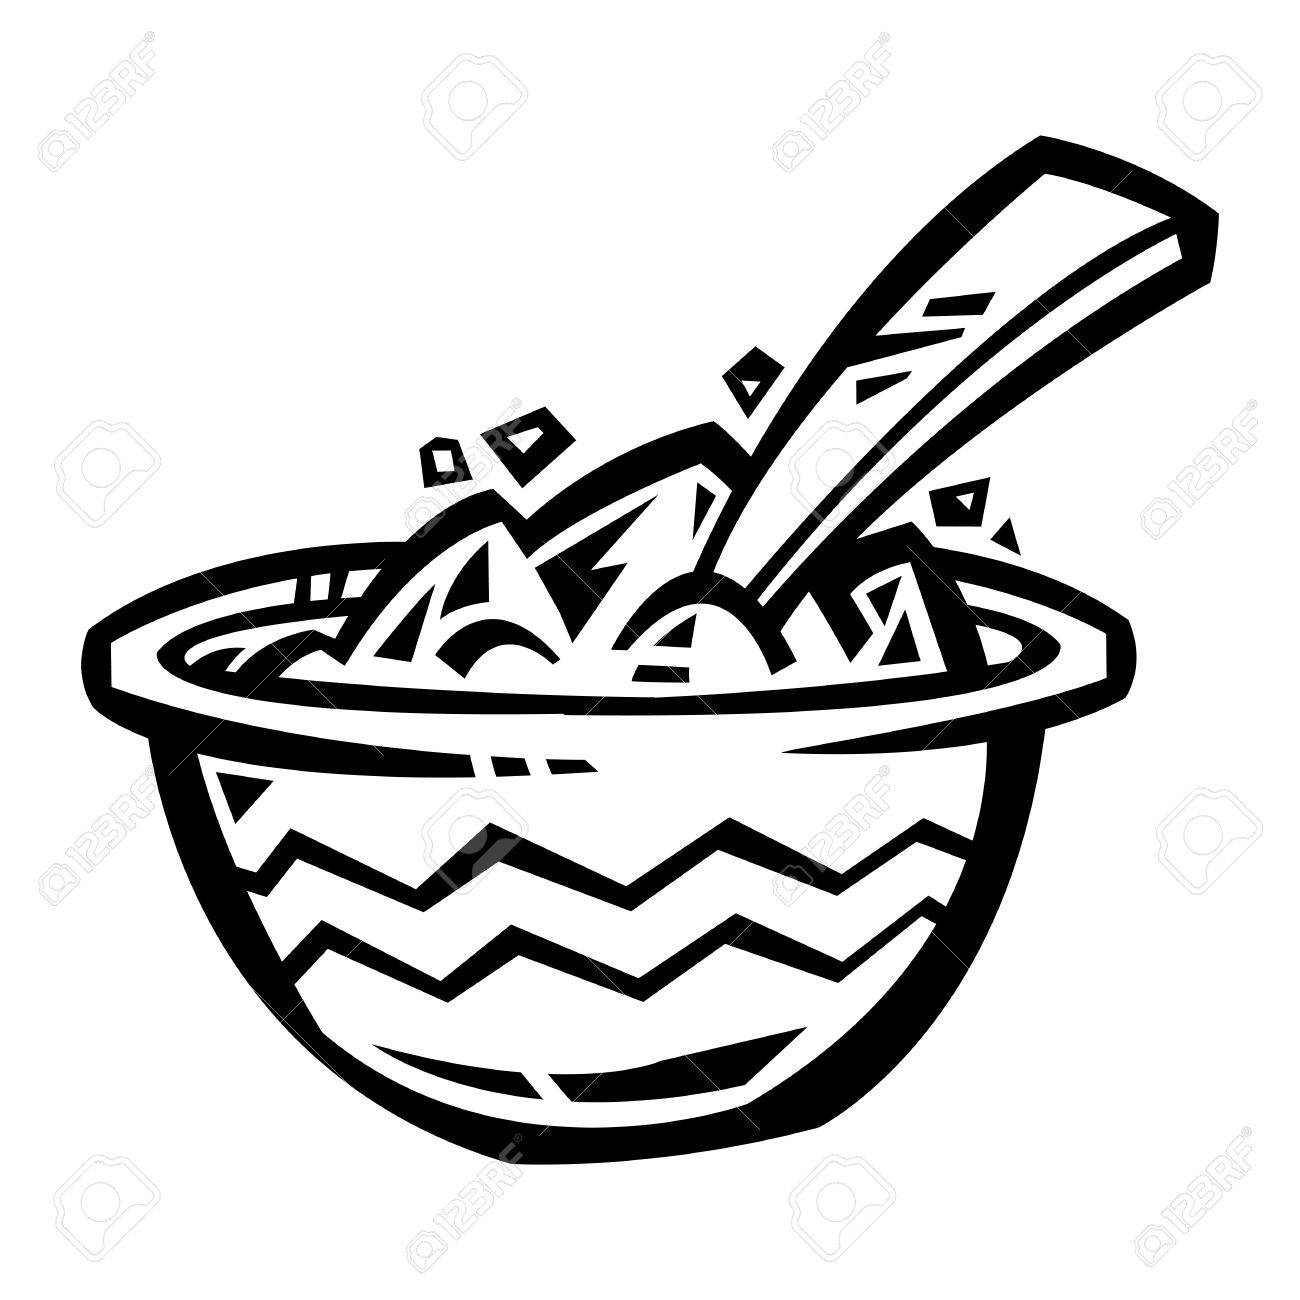 1300x1300 Bowl Of Cereal Icon Royalty Free Cliparts, Vectors, And Stock